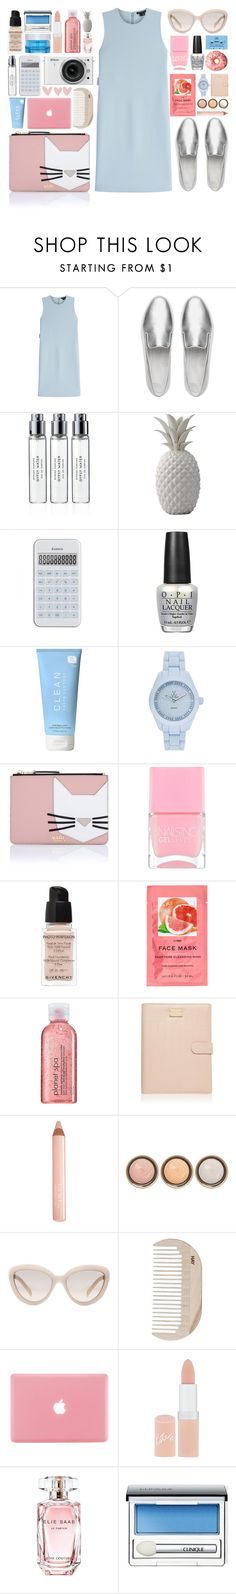 """""""x y z"""" by laurasuursepp ❤ liked on Polyvore featuring Theory, FitFlop, Byredo, Bloomingville, Nikon, OPI, CASSETTE, CLEAN, Toy Watch and Karl Lagerfeld"""